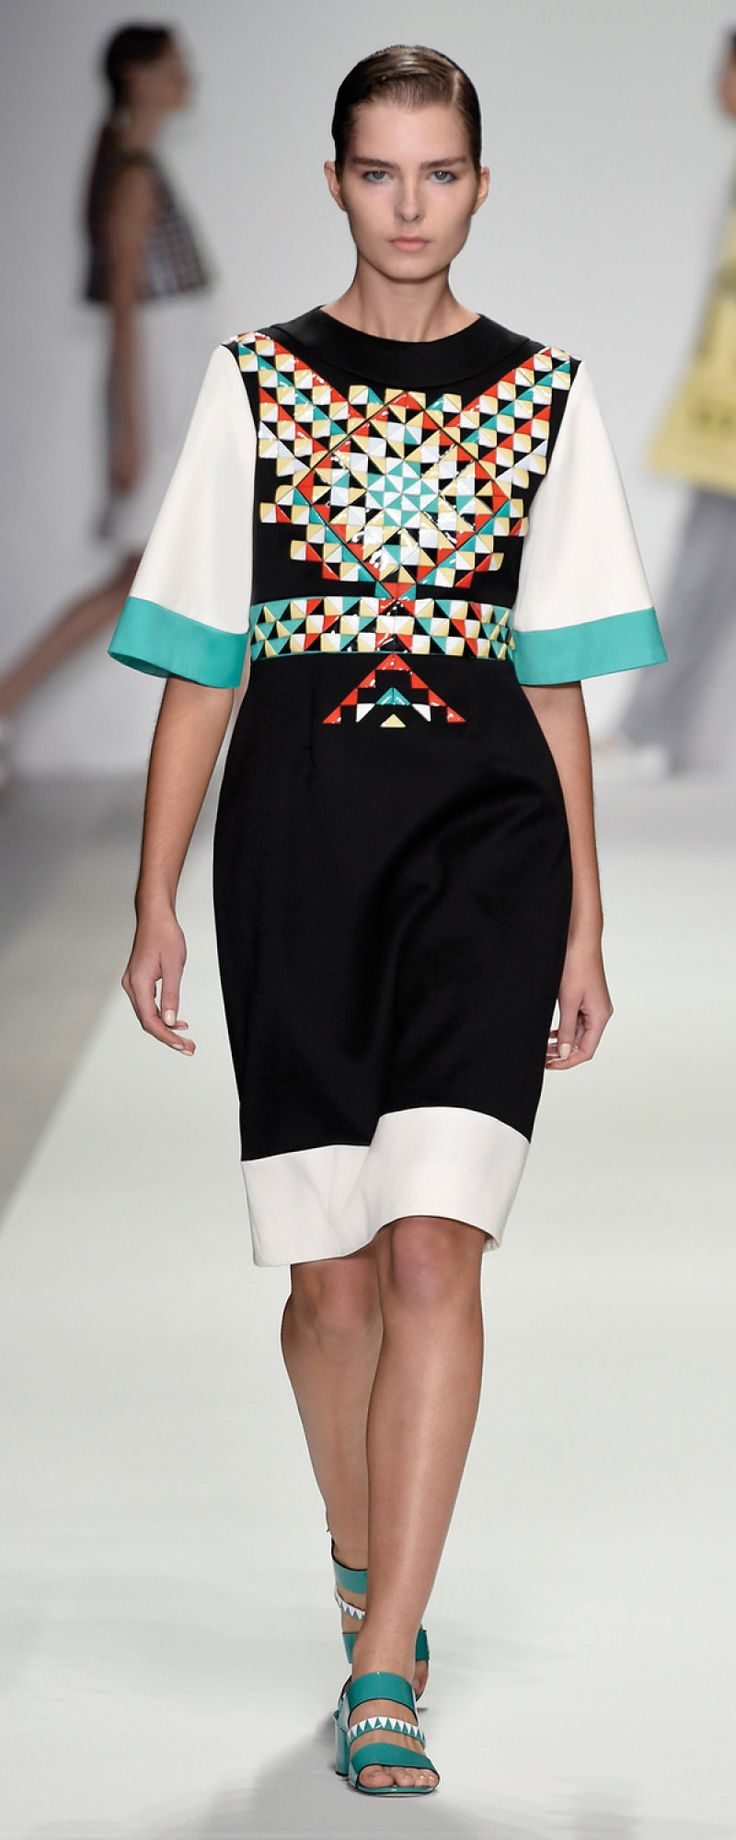 """Holly Fulton SS 2015 Scottish designer Holly Fulton's label personifies modern relaxed luxury. Fulton is extremely attentive to detail in her complex graphic embellishment and print.  """"Hand rendered, digitally manipulated print coupled with unusual fabrications create strong unified looks, from top to toe."""" (Fulton, 2014) http://www.hollyfulton.com/collection/ss15#34"""